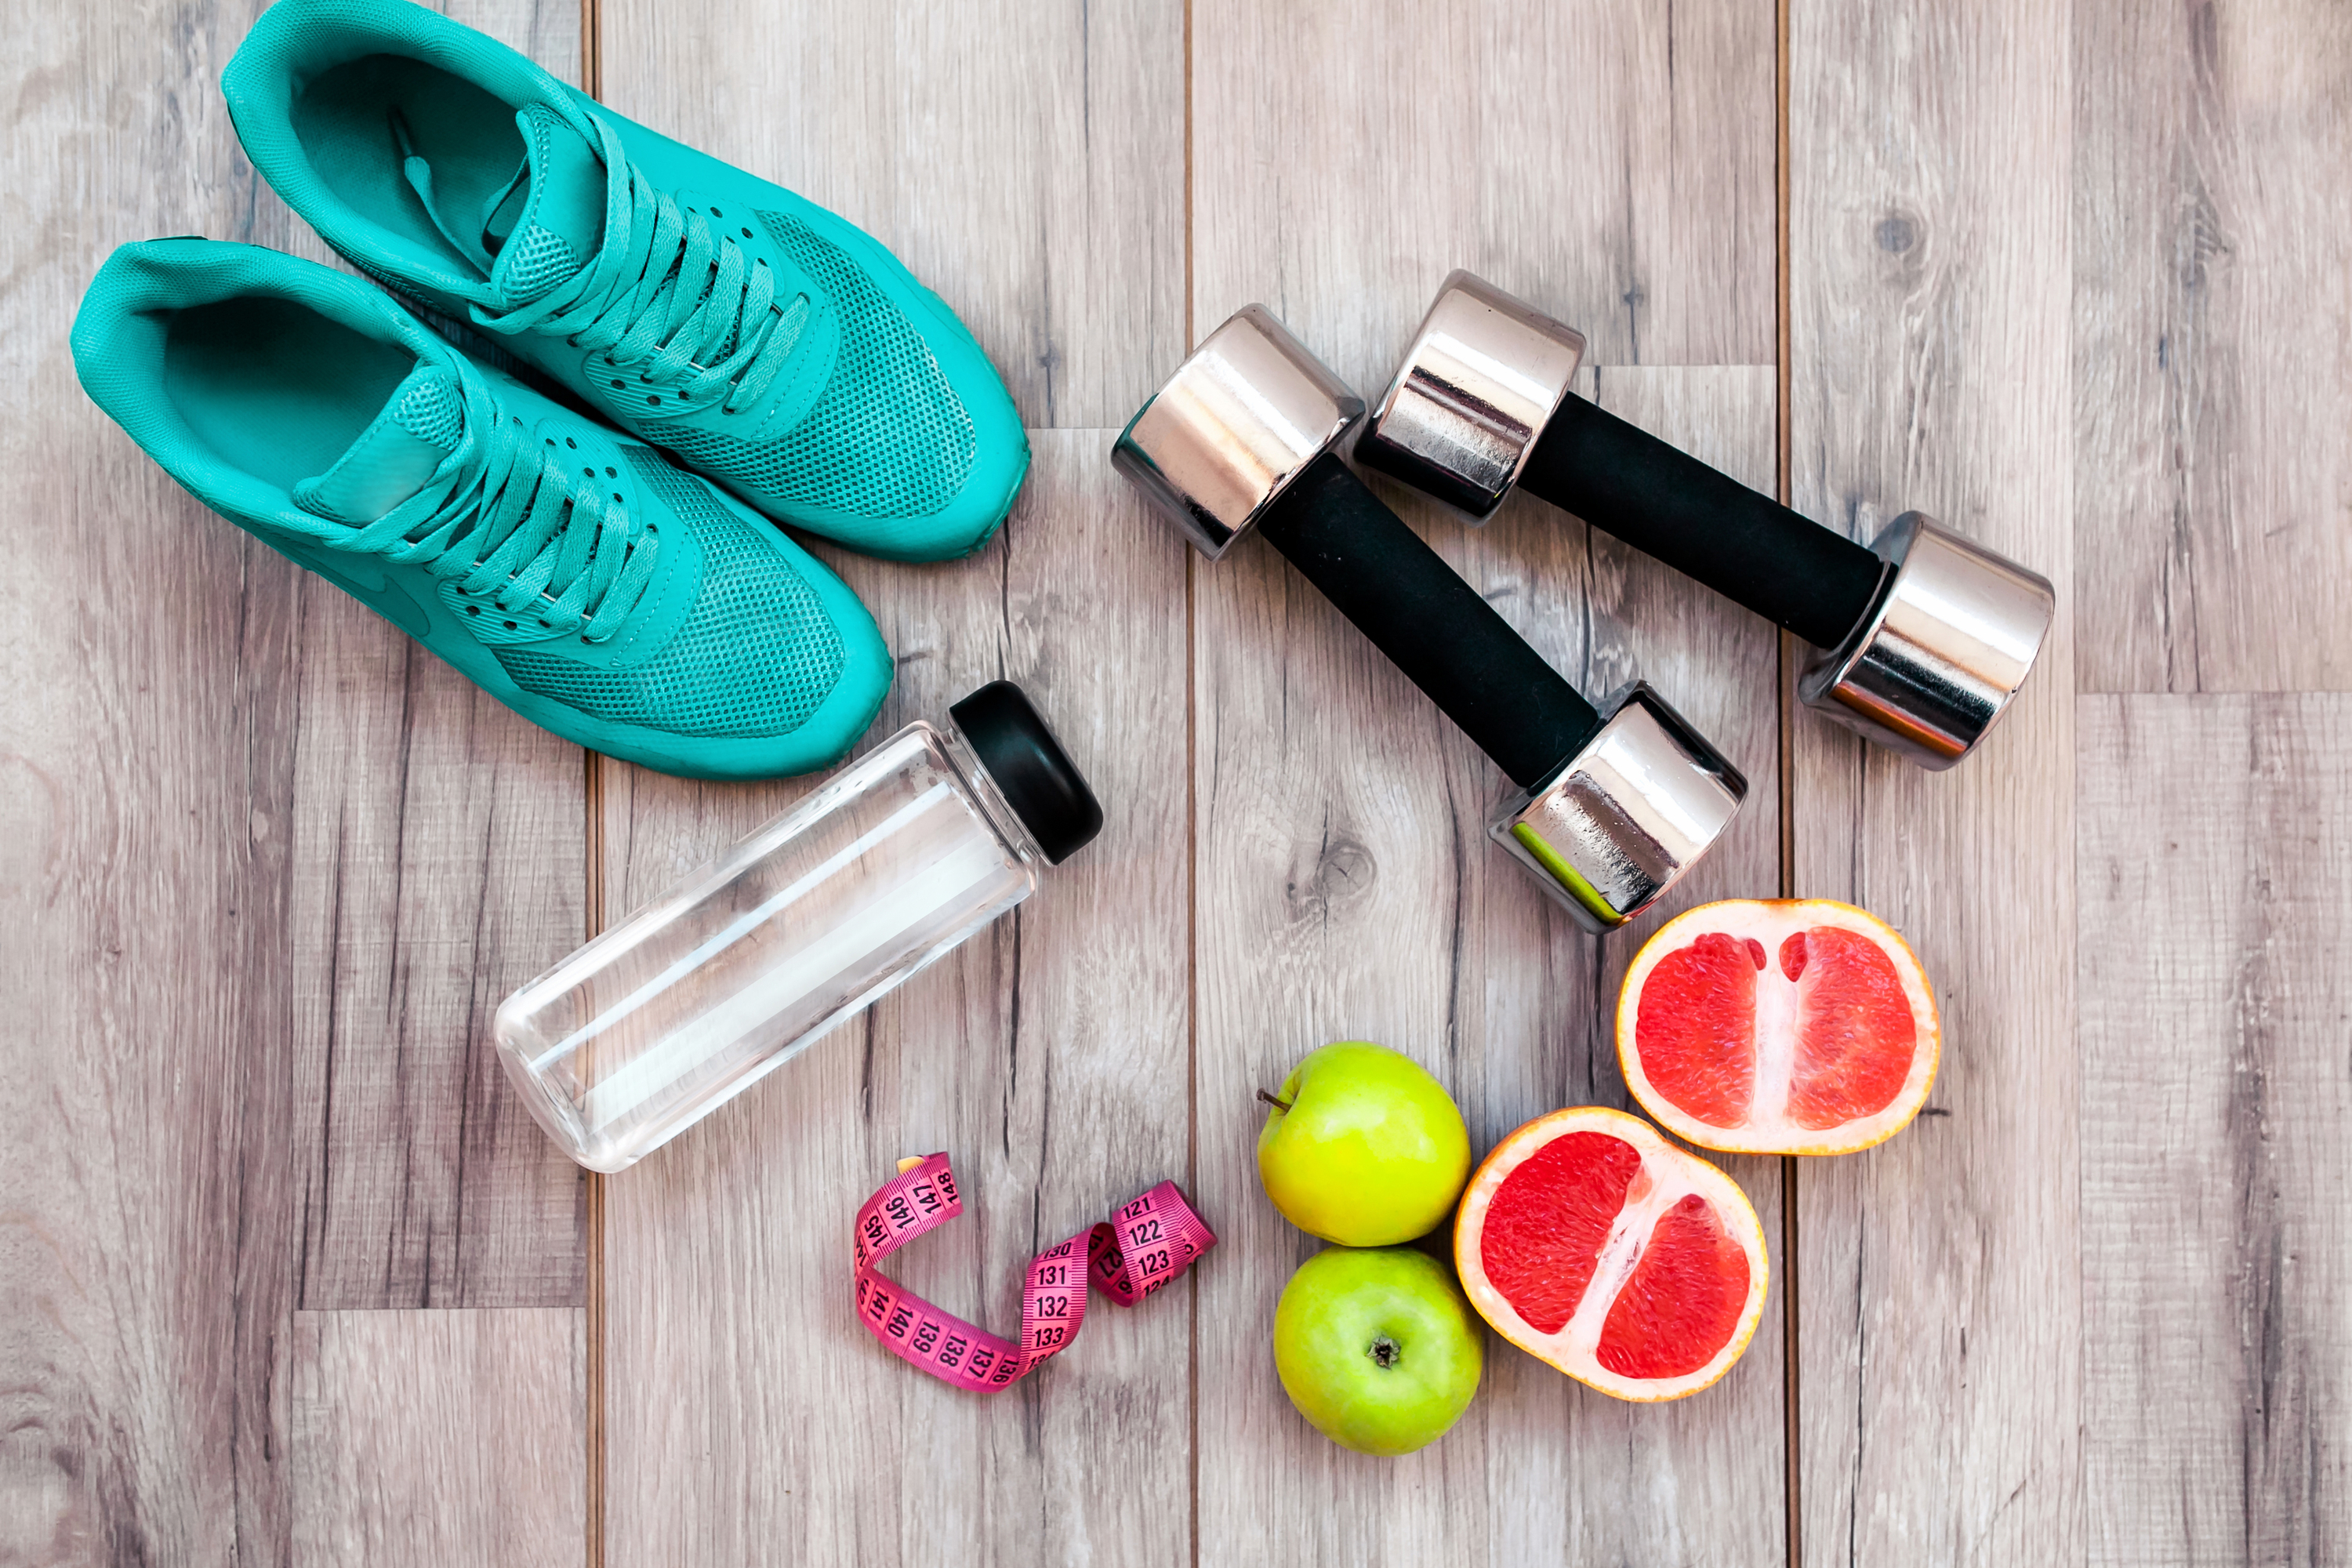 Sometimes life gets a little crazy and it can be incredibly difficult to work out. These fitness tips will help you maintain a healthy lifestyle. Make sure you make exercising a priority.